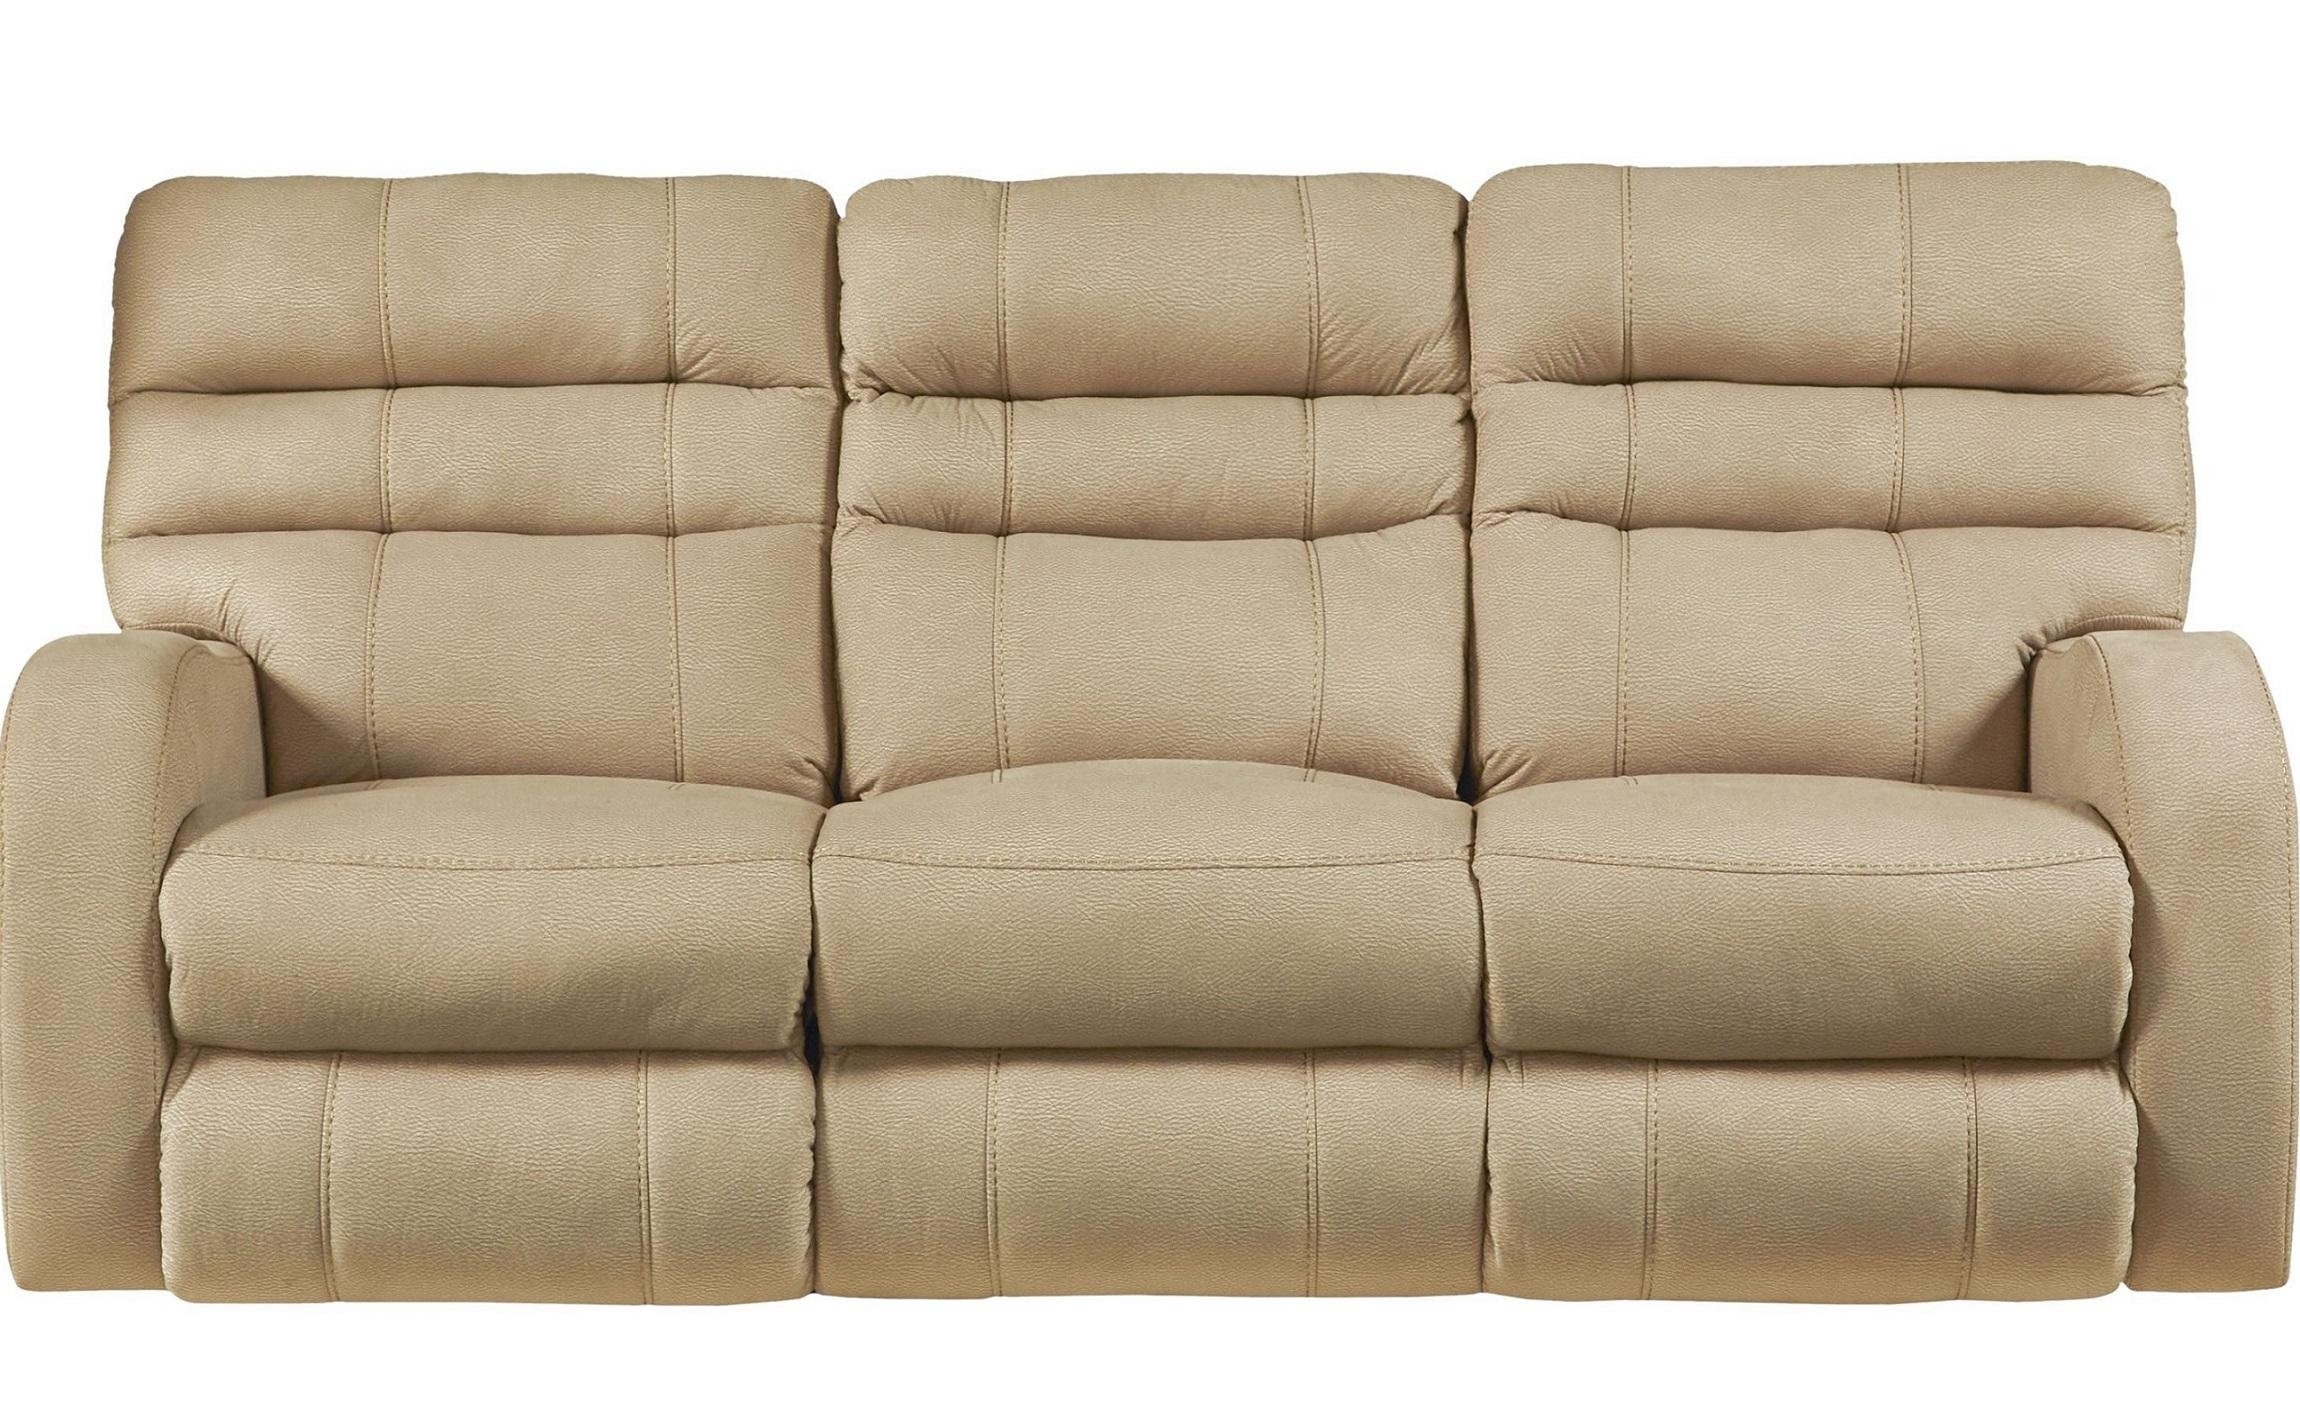 voyager lay flat triple reclining sofa sectional leather 20 photos catnapper sofas ideas